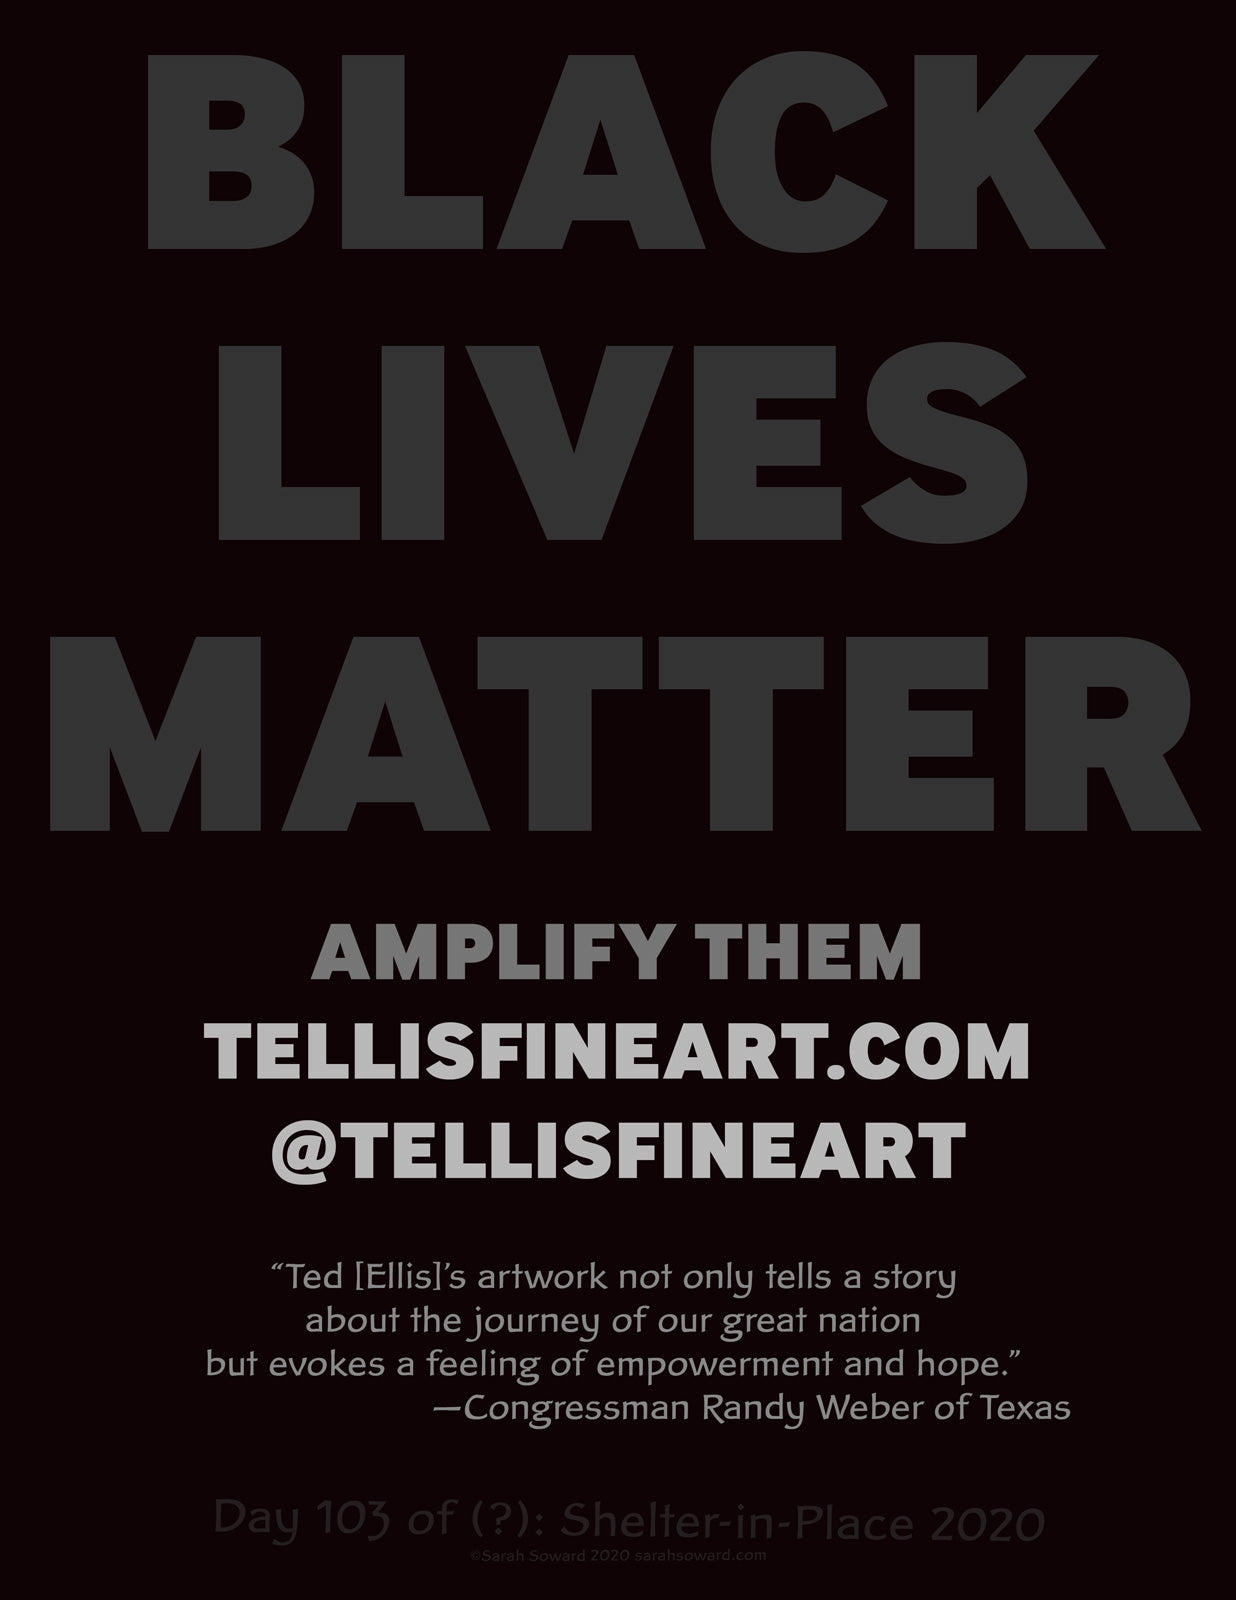 This is a text based image. The text on the image reads BLACK LIVES MATTER.AMPLIFY THEM. tellisfineart.com @Tellisfineart. Ted [Ellis]'s artwork not only tells a story about the journey of our great nation but evokes a feeling of empowerment and hope. Congressman Randy Weber of Texas